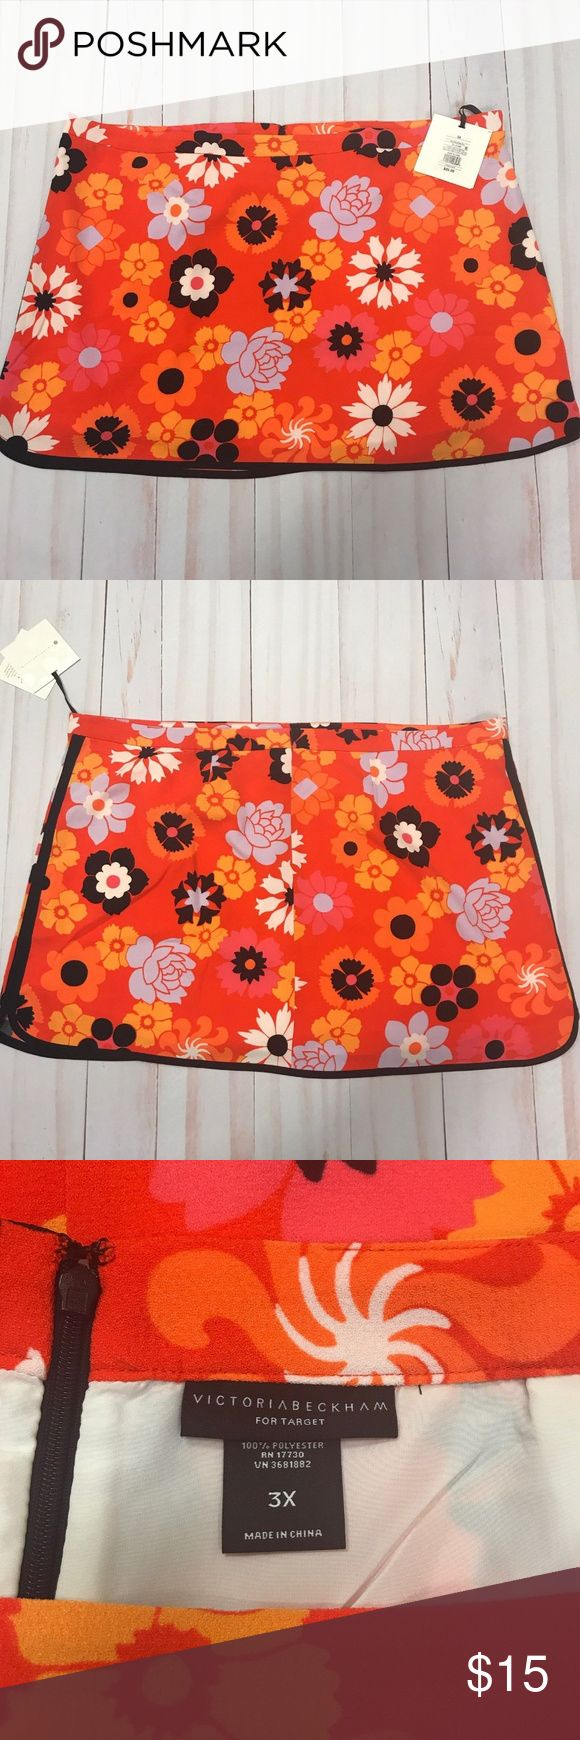 """Victoria Beckham For Target Plus Size Mini Skirt New with tags Victoria Beckham for Target women's 3X floral lined mini skirt.  The skirt measures flat across the waist 25.5"""" and is 19"""" .  Two small stains please look at last two photos. Victoria Beckham for Target Skirts Mini"""